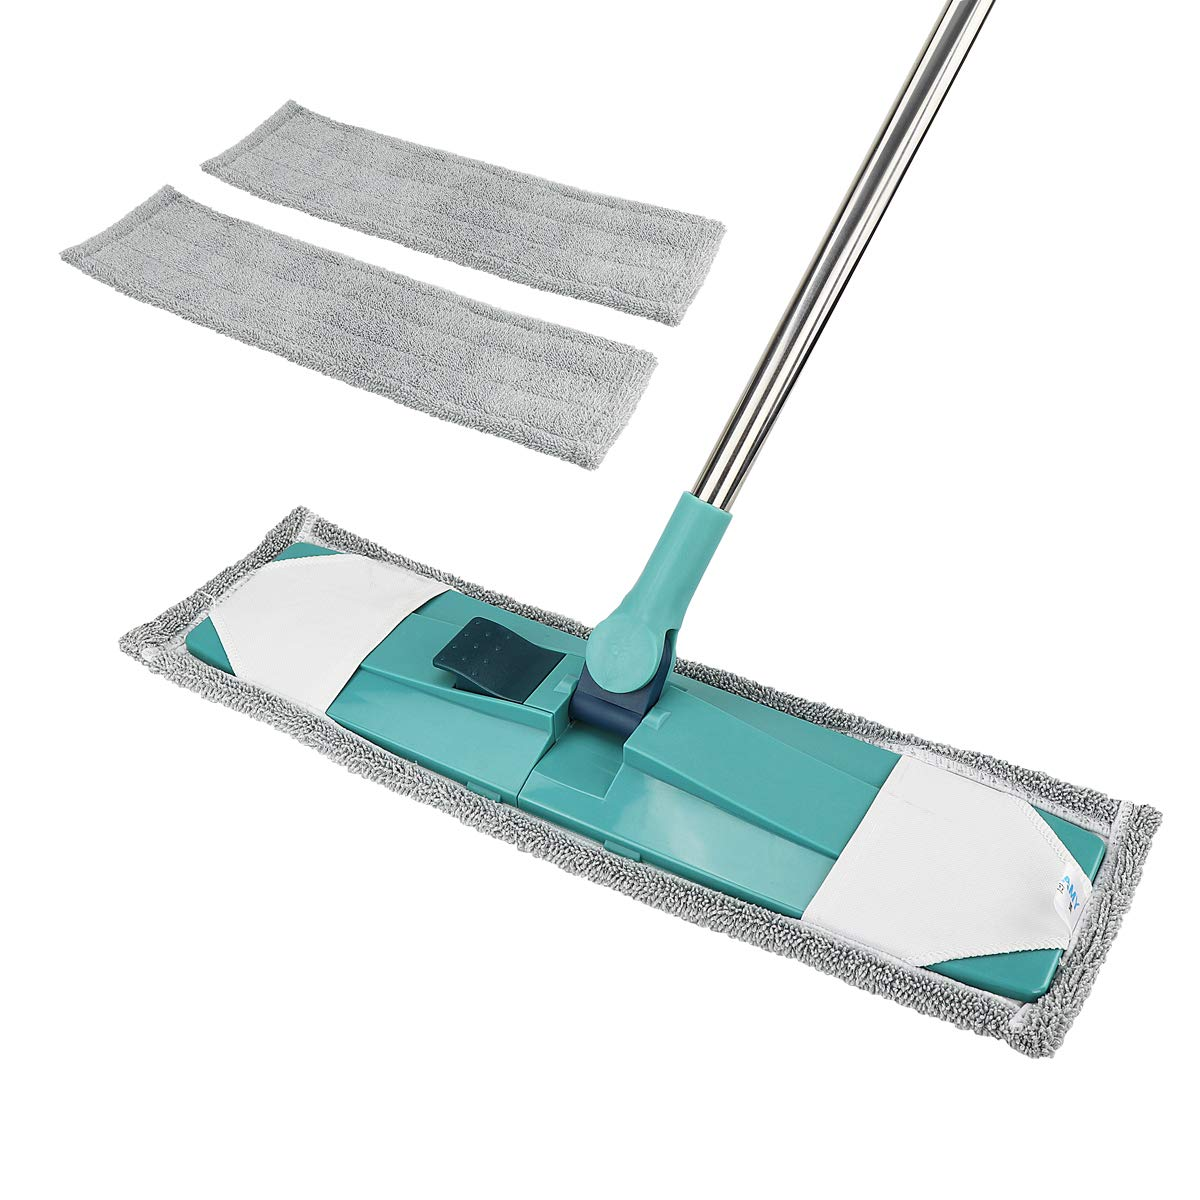 Microfiber Mop, Dust Mop Dry Mop for Hardwood Laminate Tile, Floor Mop with Washable Pads and Telescopic Handle Made of Stainless Steel, Dry Wet Cleaning 2 Replacement Mop Cloths for Free